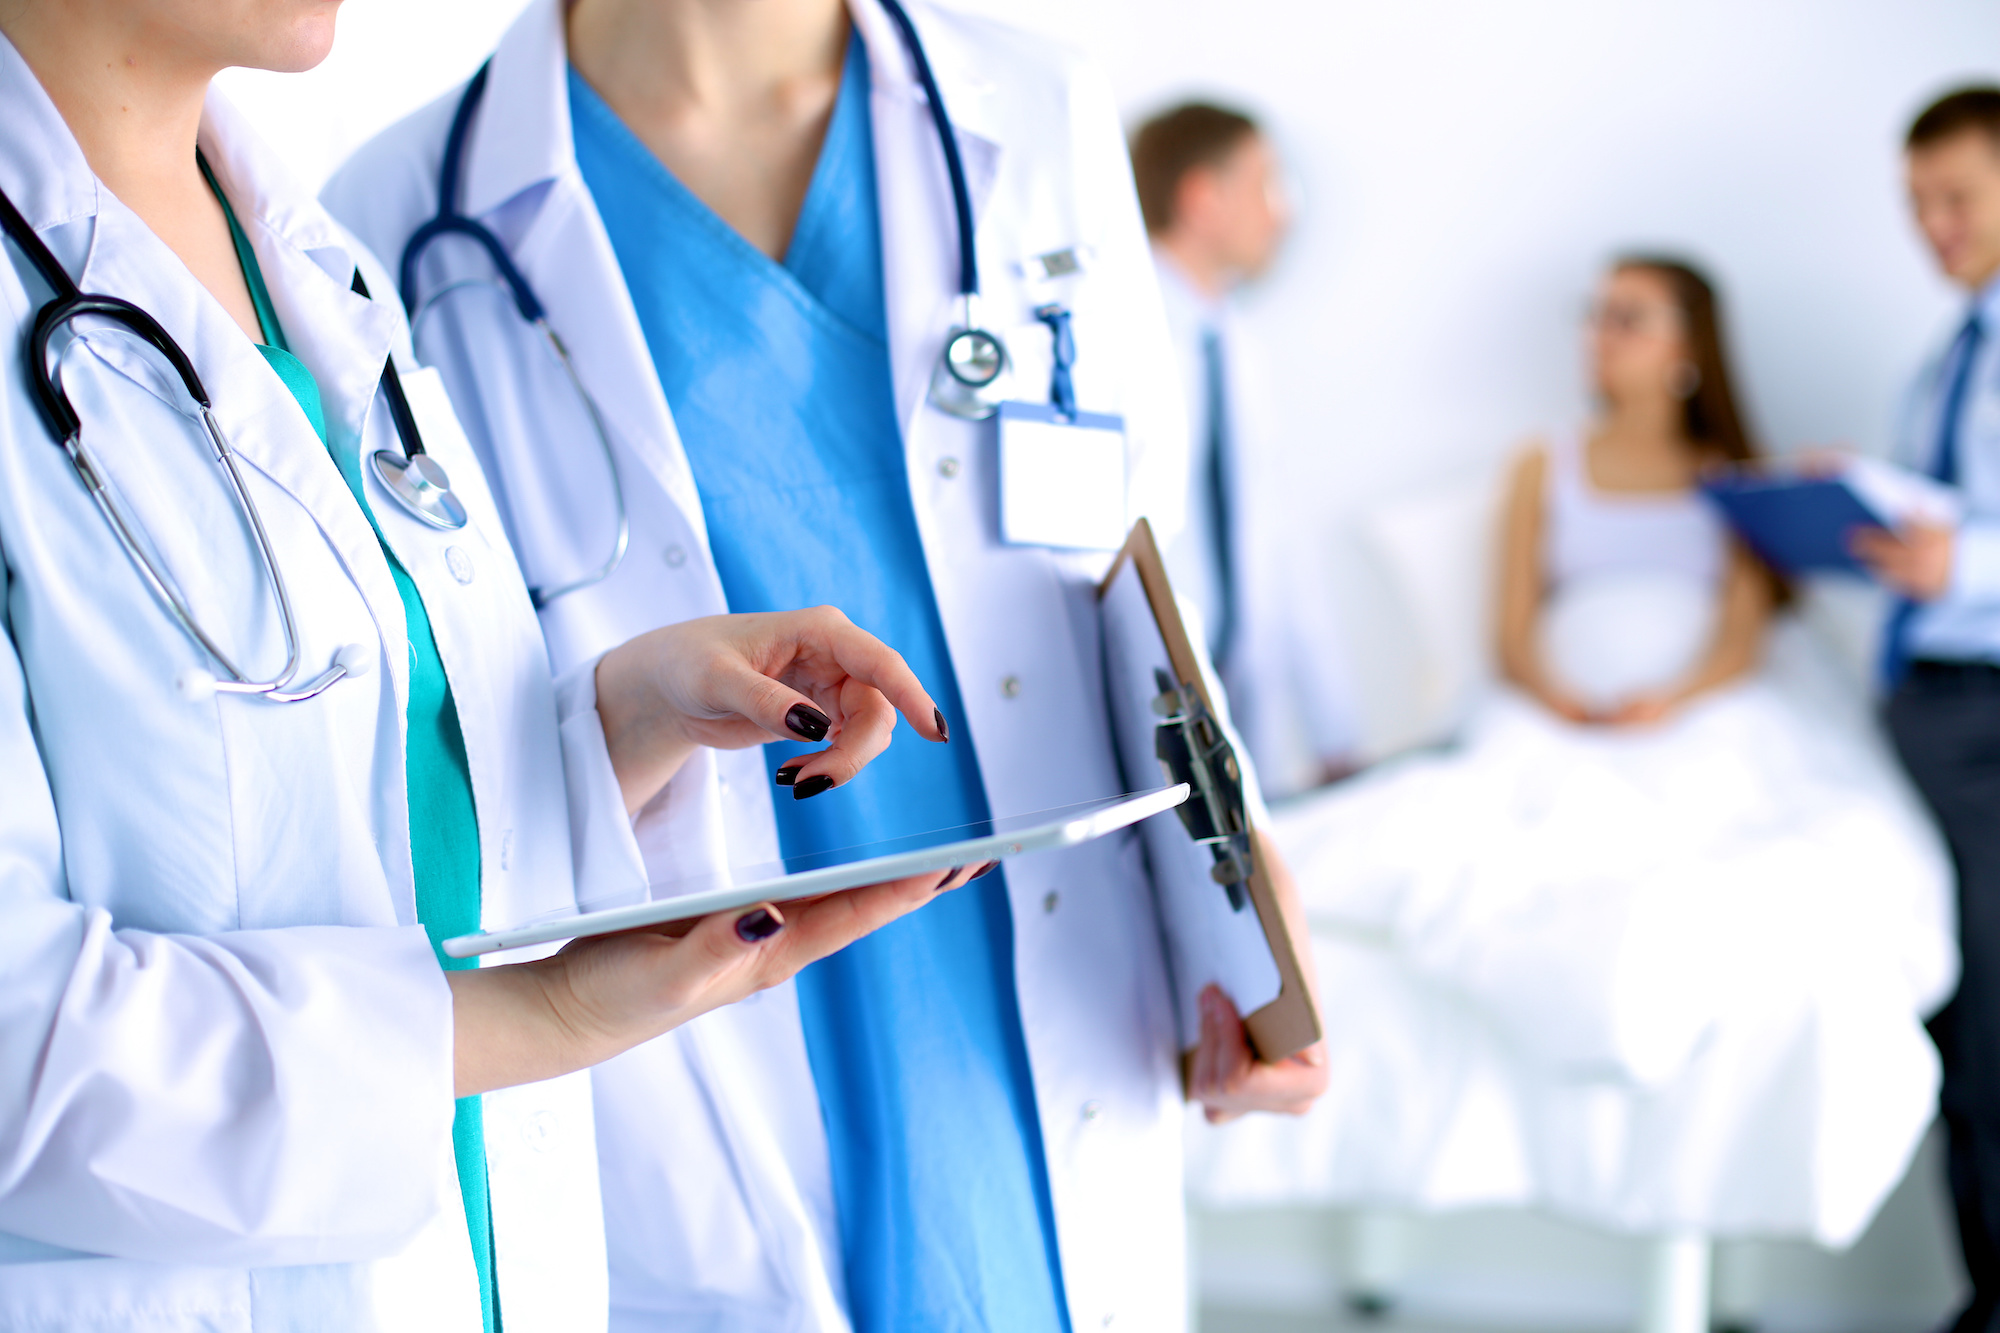 CANADA: Understanding your electronic health data